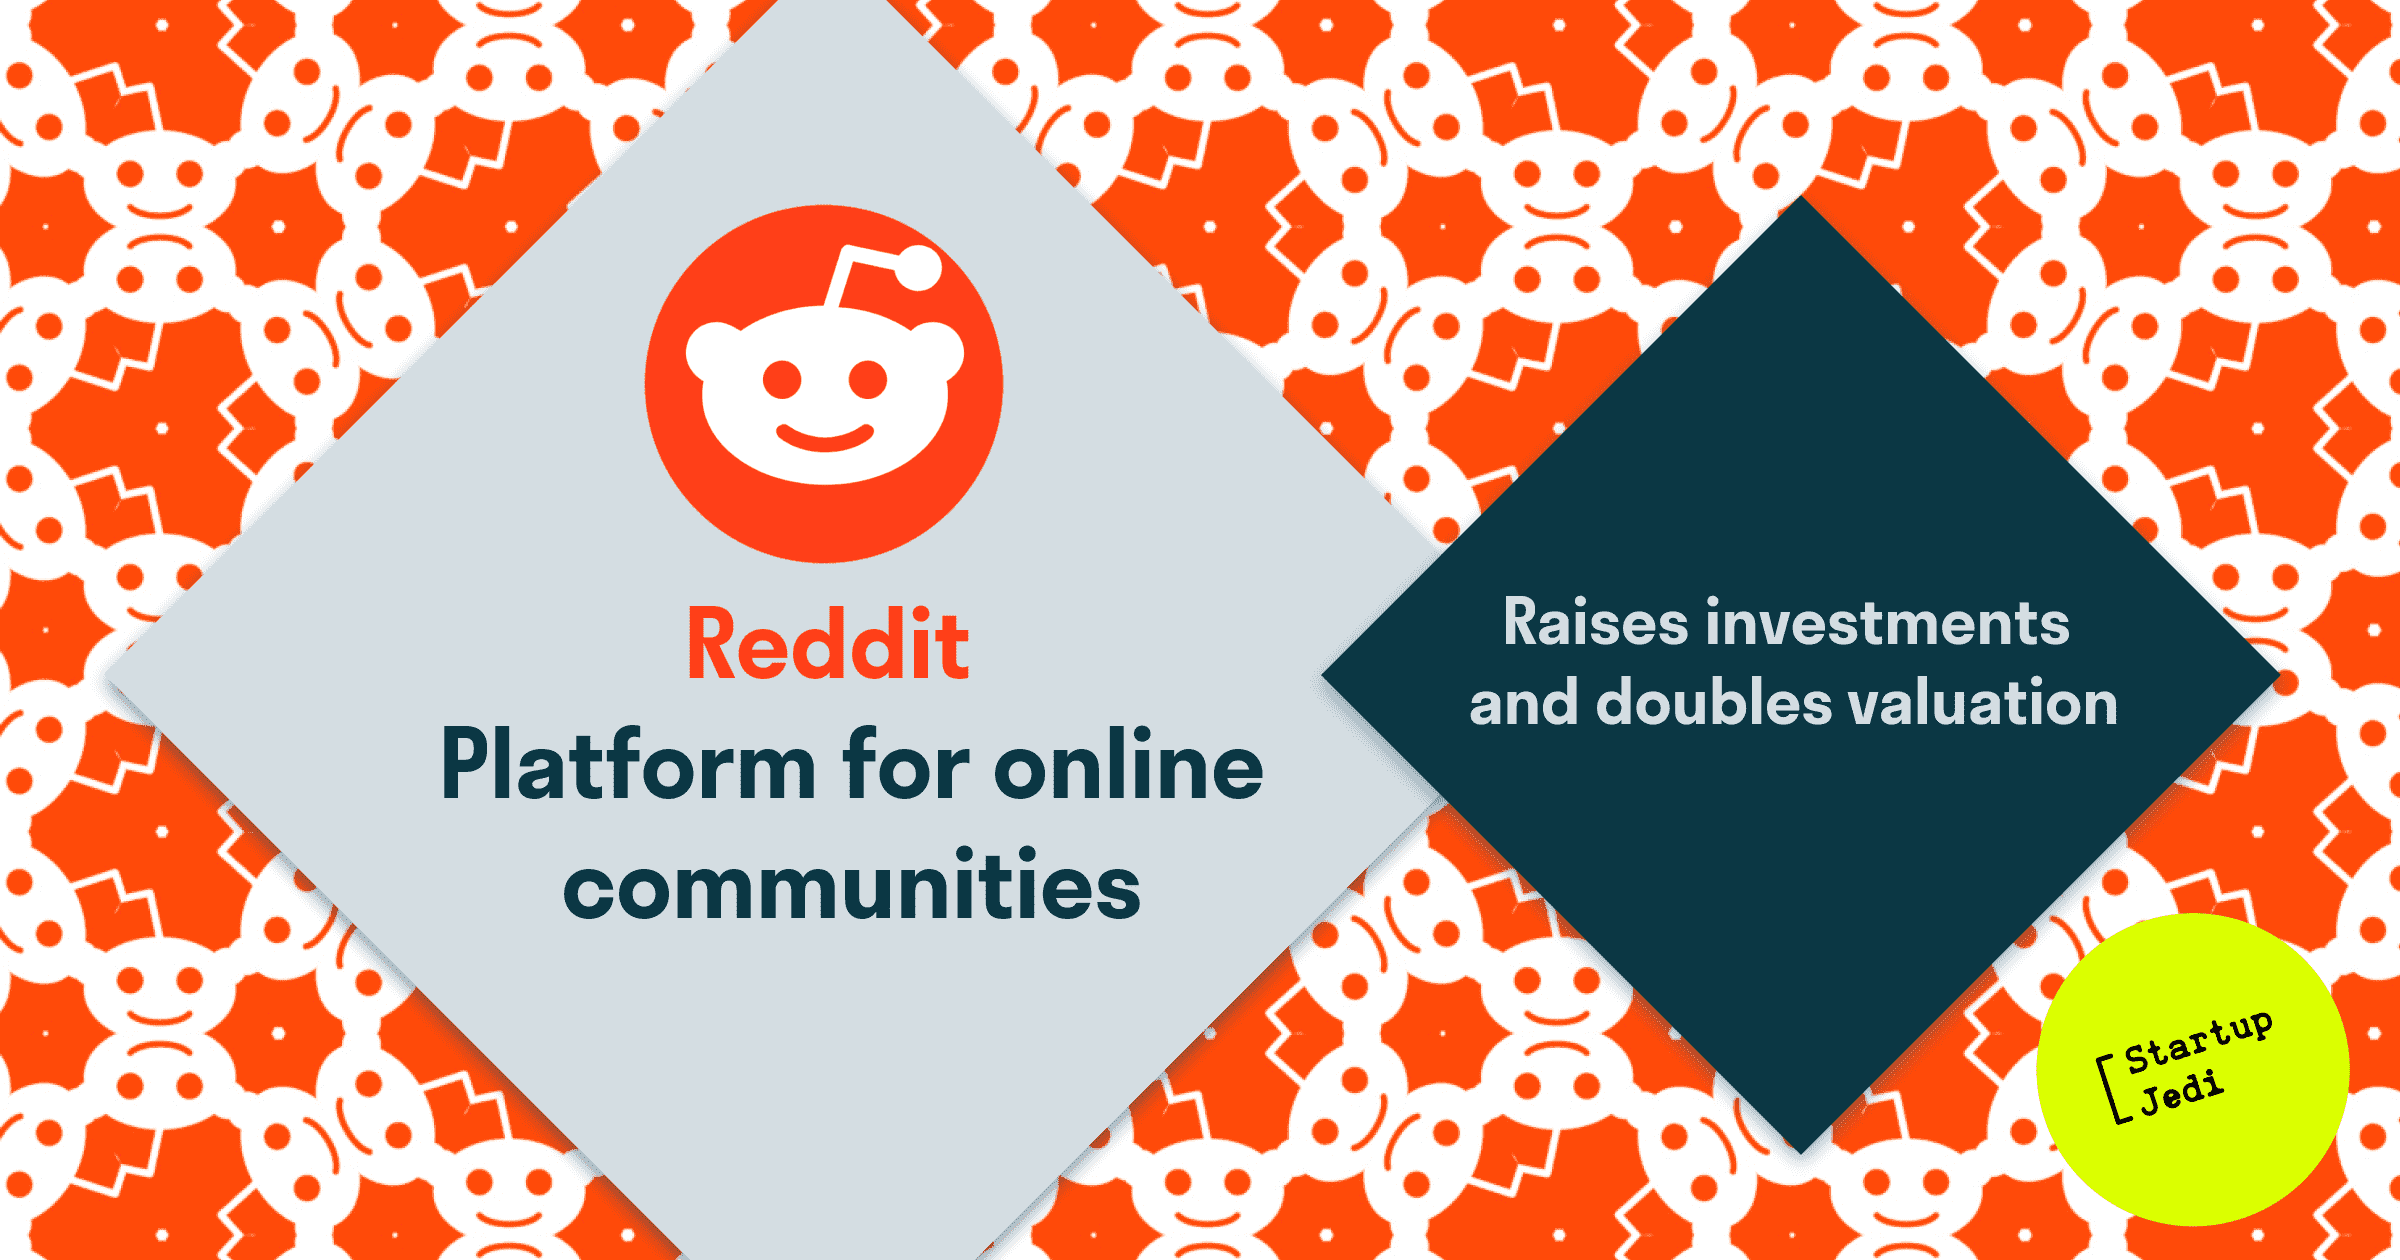 Reddit raises its valuation